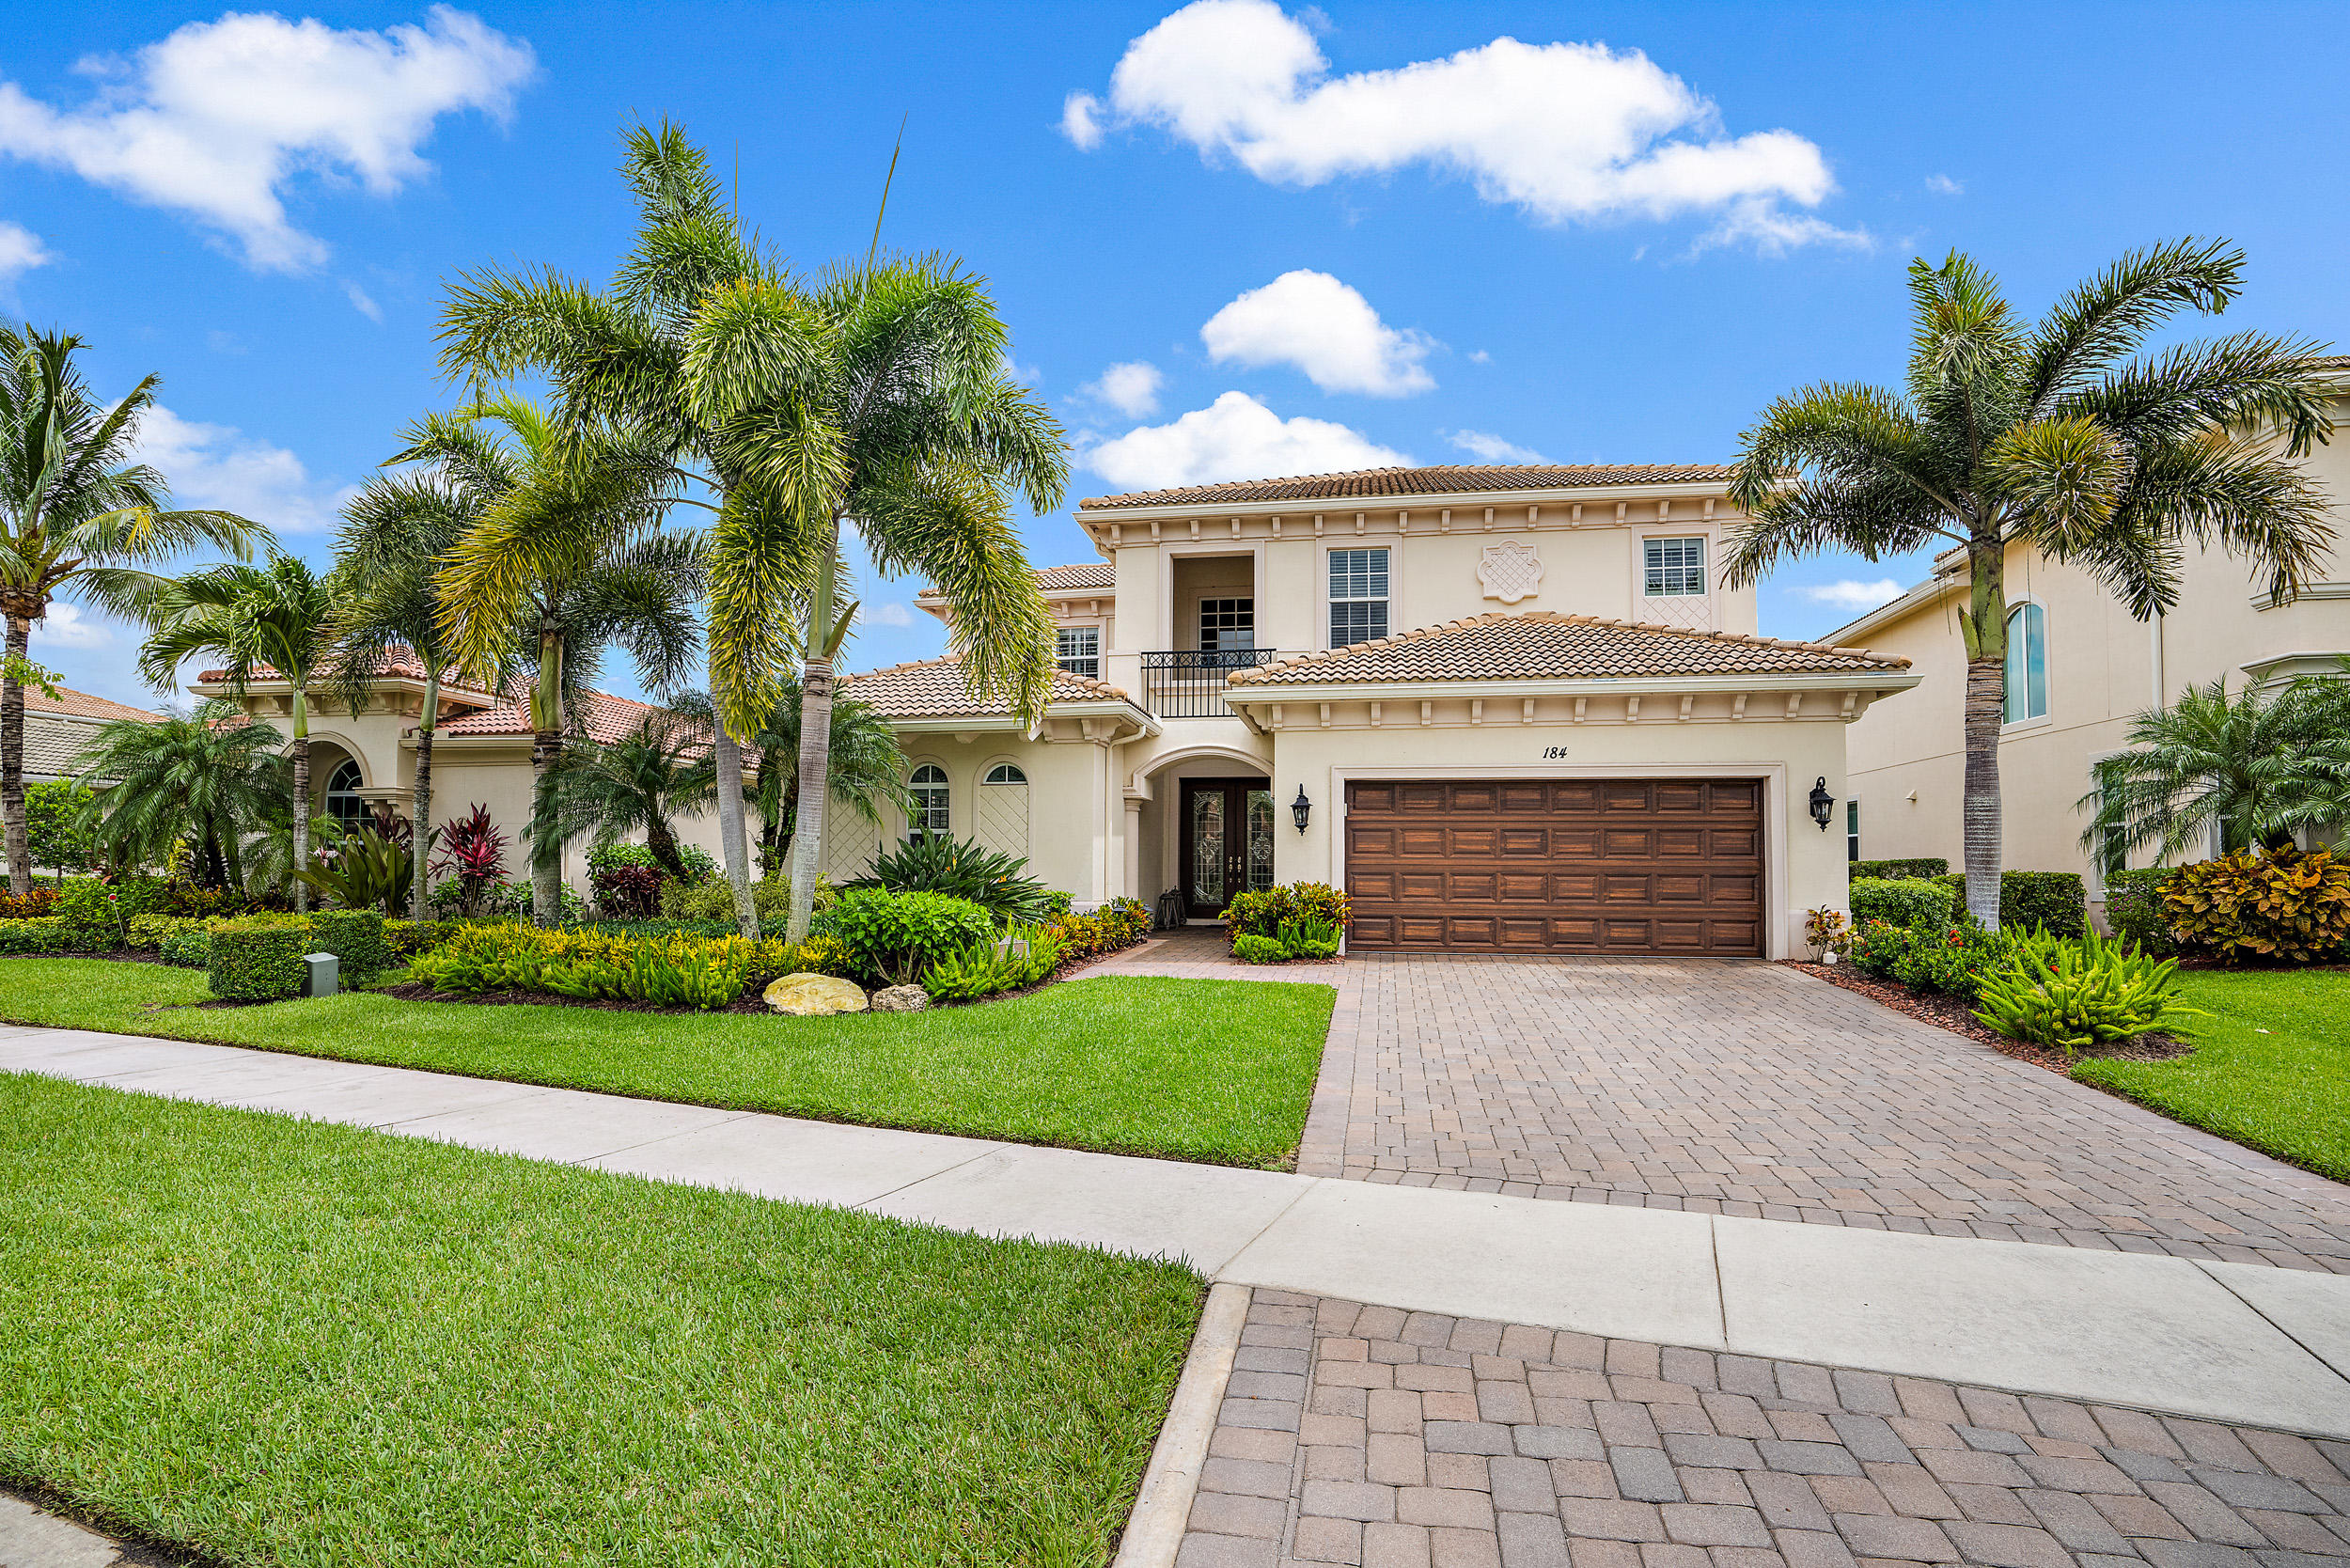 Desirable Santangelo model.  Screened heated pool and spa facing south. Fabulous covered outdoor kitchen and seating area with TV. Master Suite, one guest bedroom, and office on first floor. 2 Car air conditioned garage with epoxy floor is extended for easy golf cart storage. Home has new AC. Social membership required $3000 but golf membership available for only $5000 upfront fee.  Normally $25000.